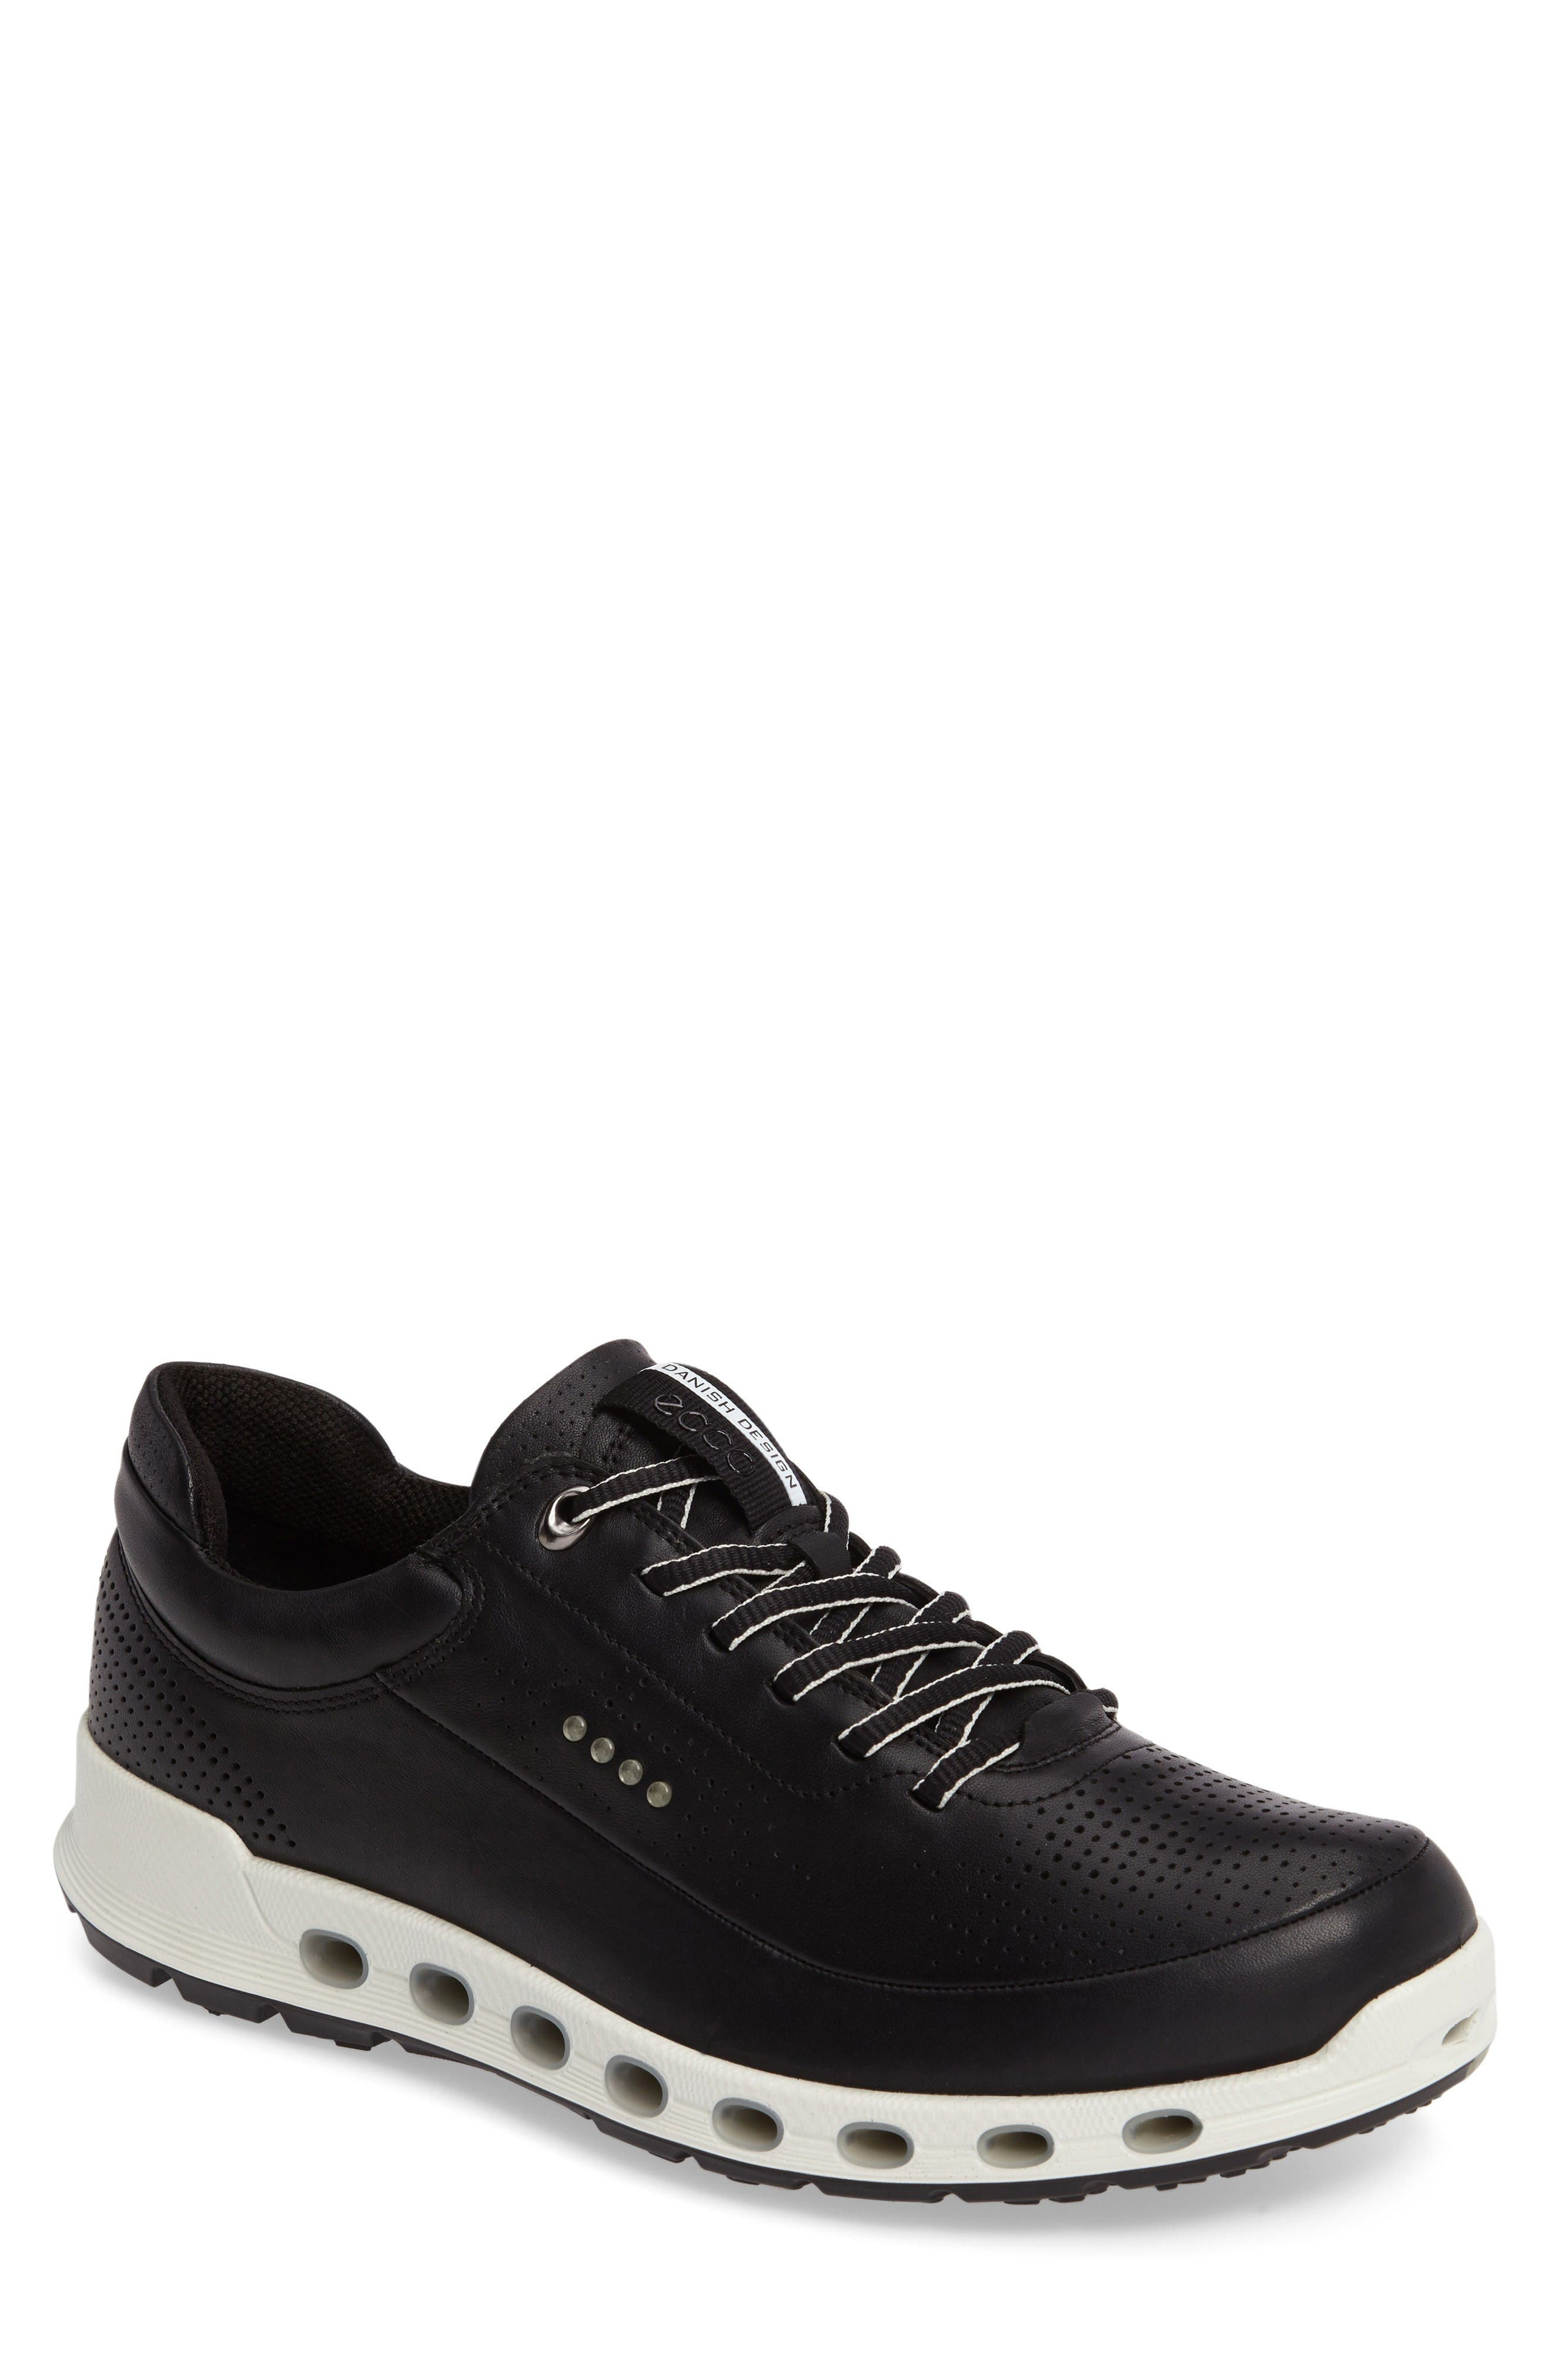 Alternate Image 1 Selected - ECCO Cool 2.0 Leather GTX Sneaker